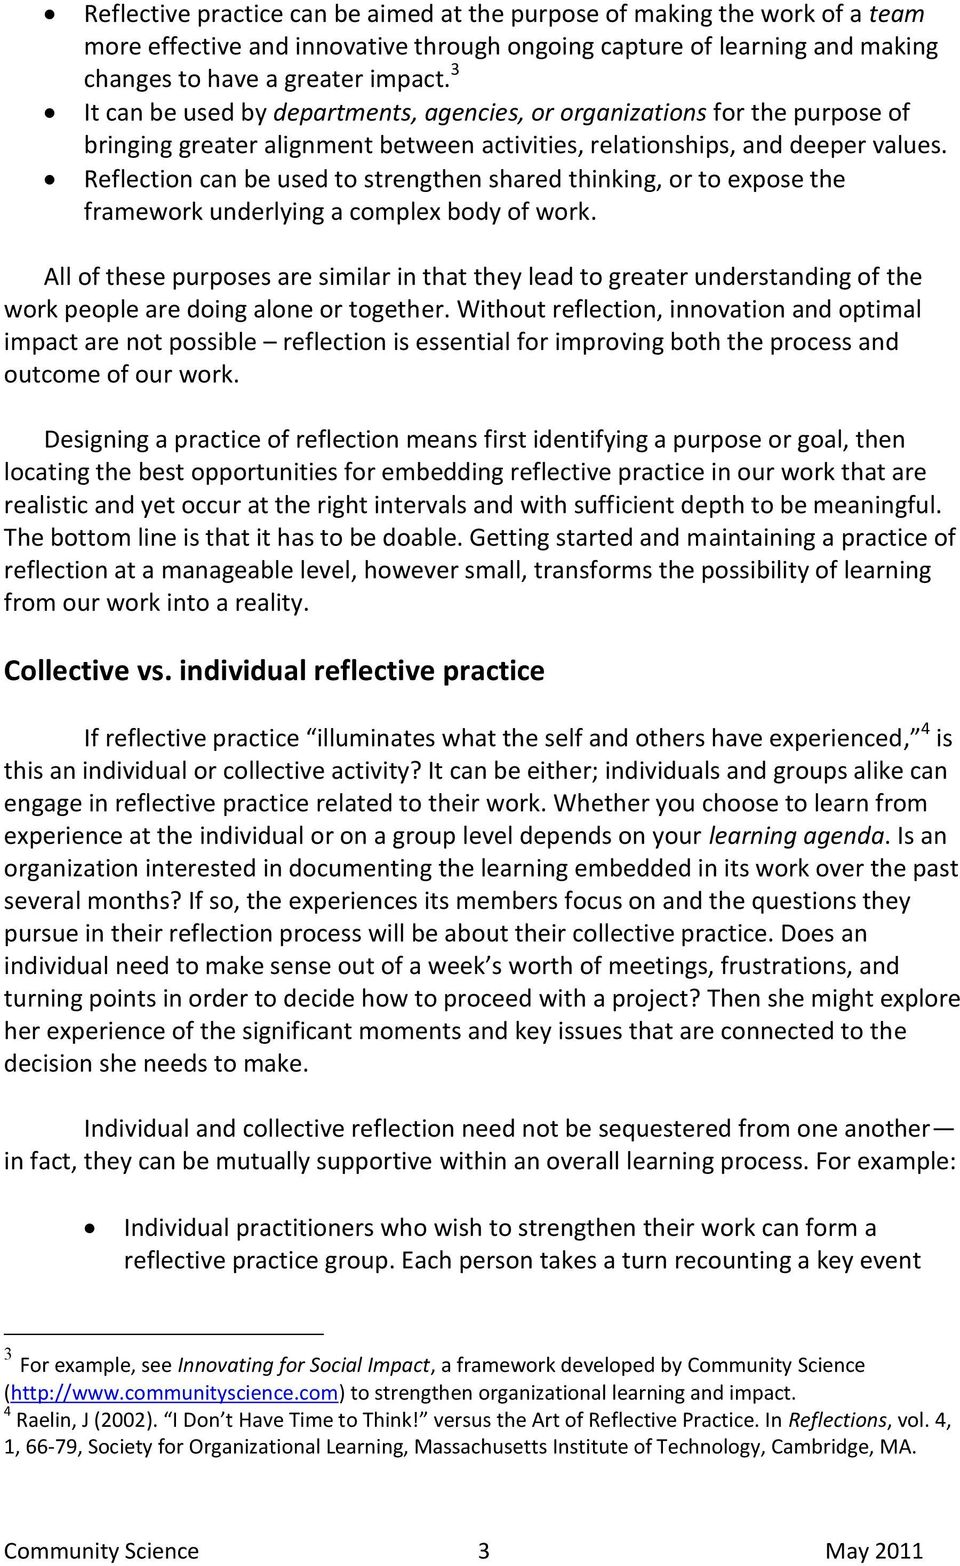 Reflection can be used to strengthen shared thinking, or to expose the framework underlying a complex body of work.